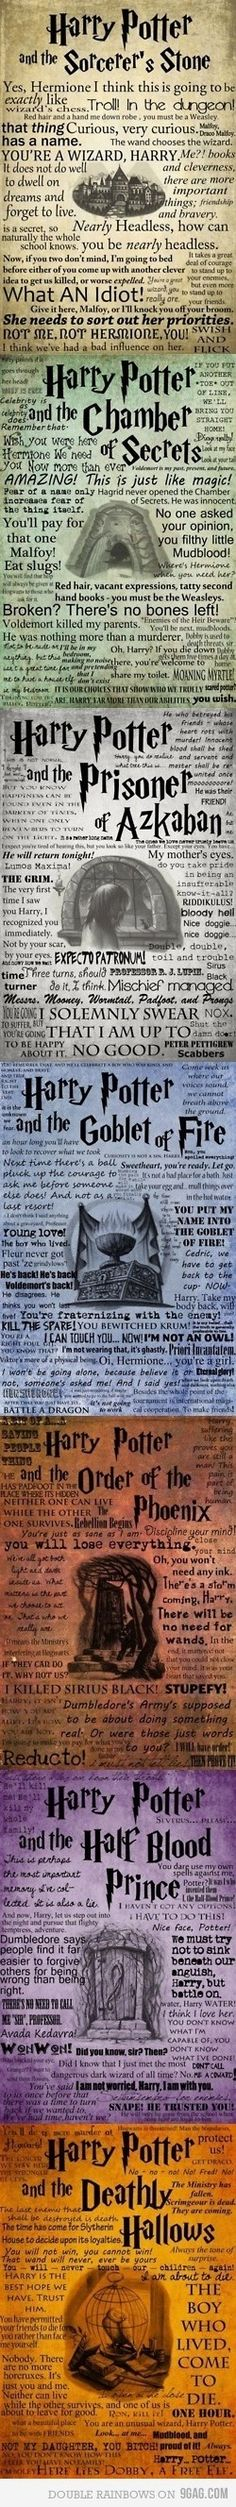 Harry Potter quotes. Every time I read one my mind immediately pictures that part of the story